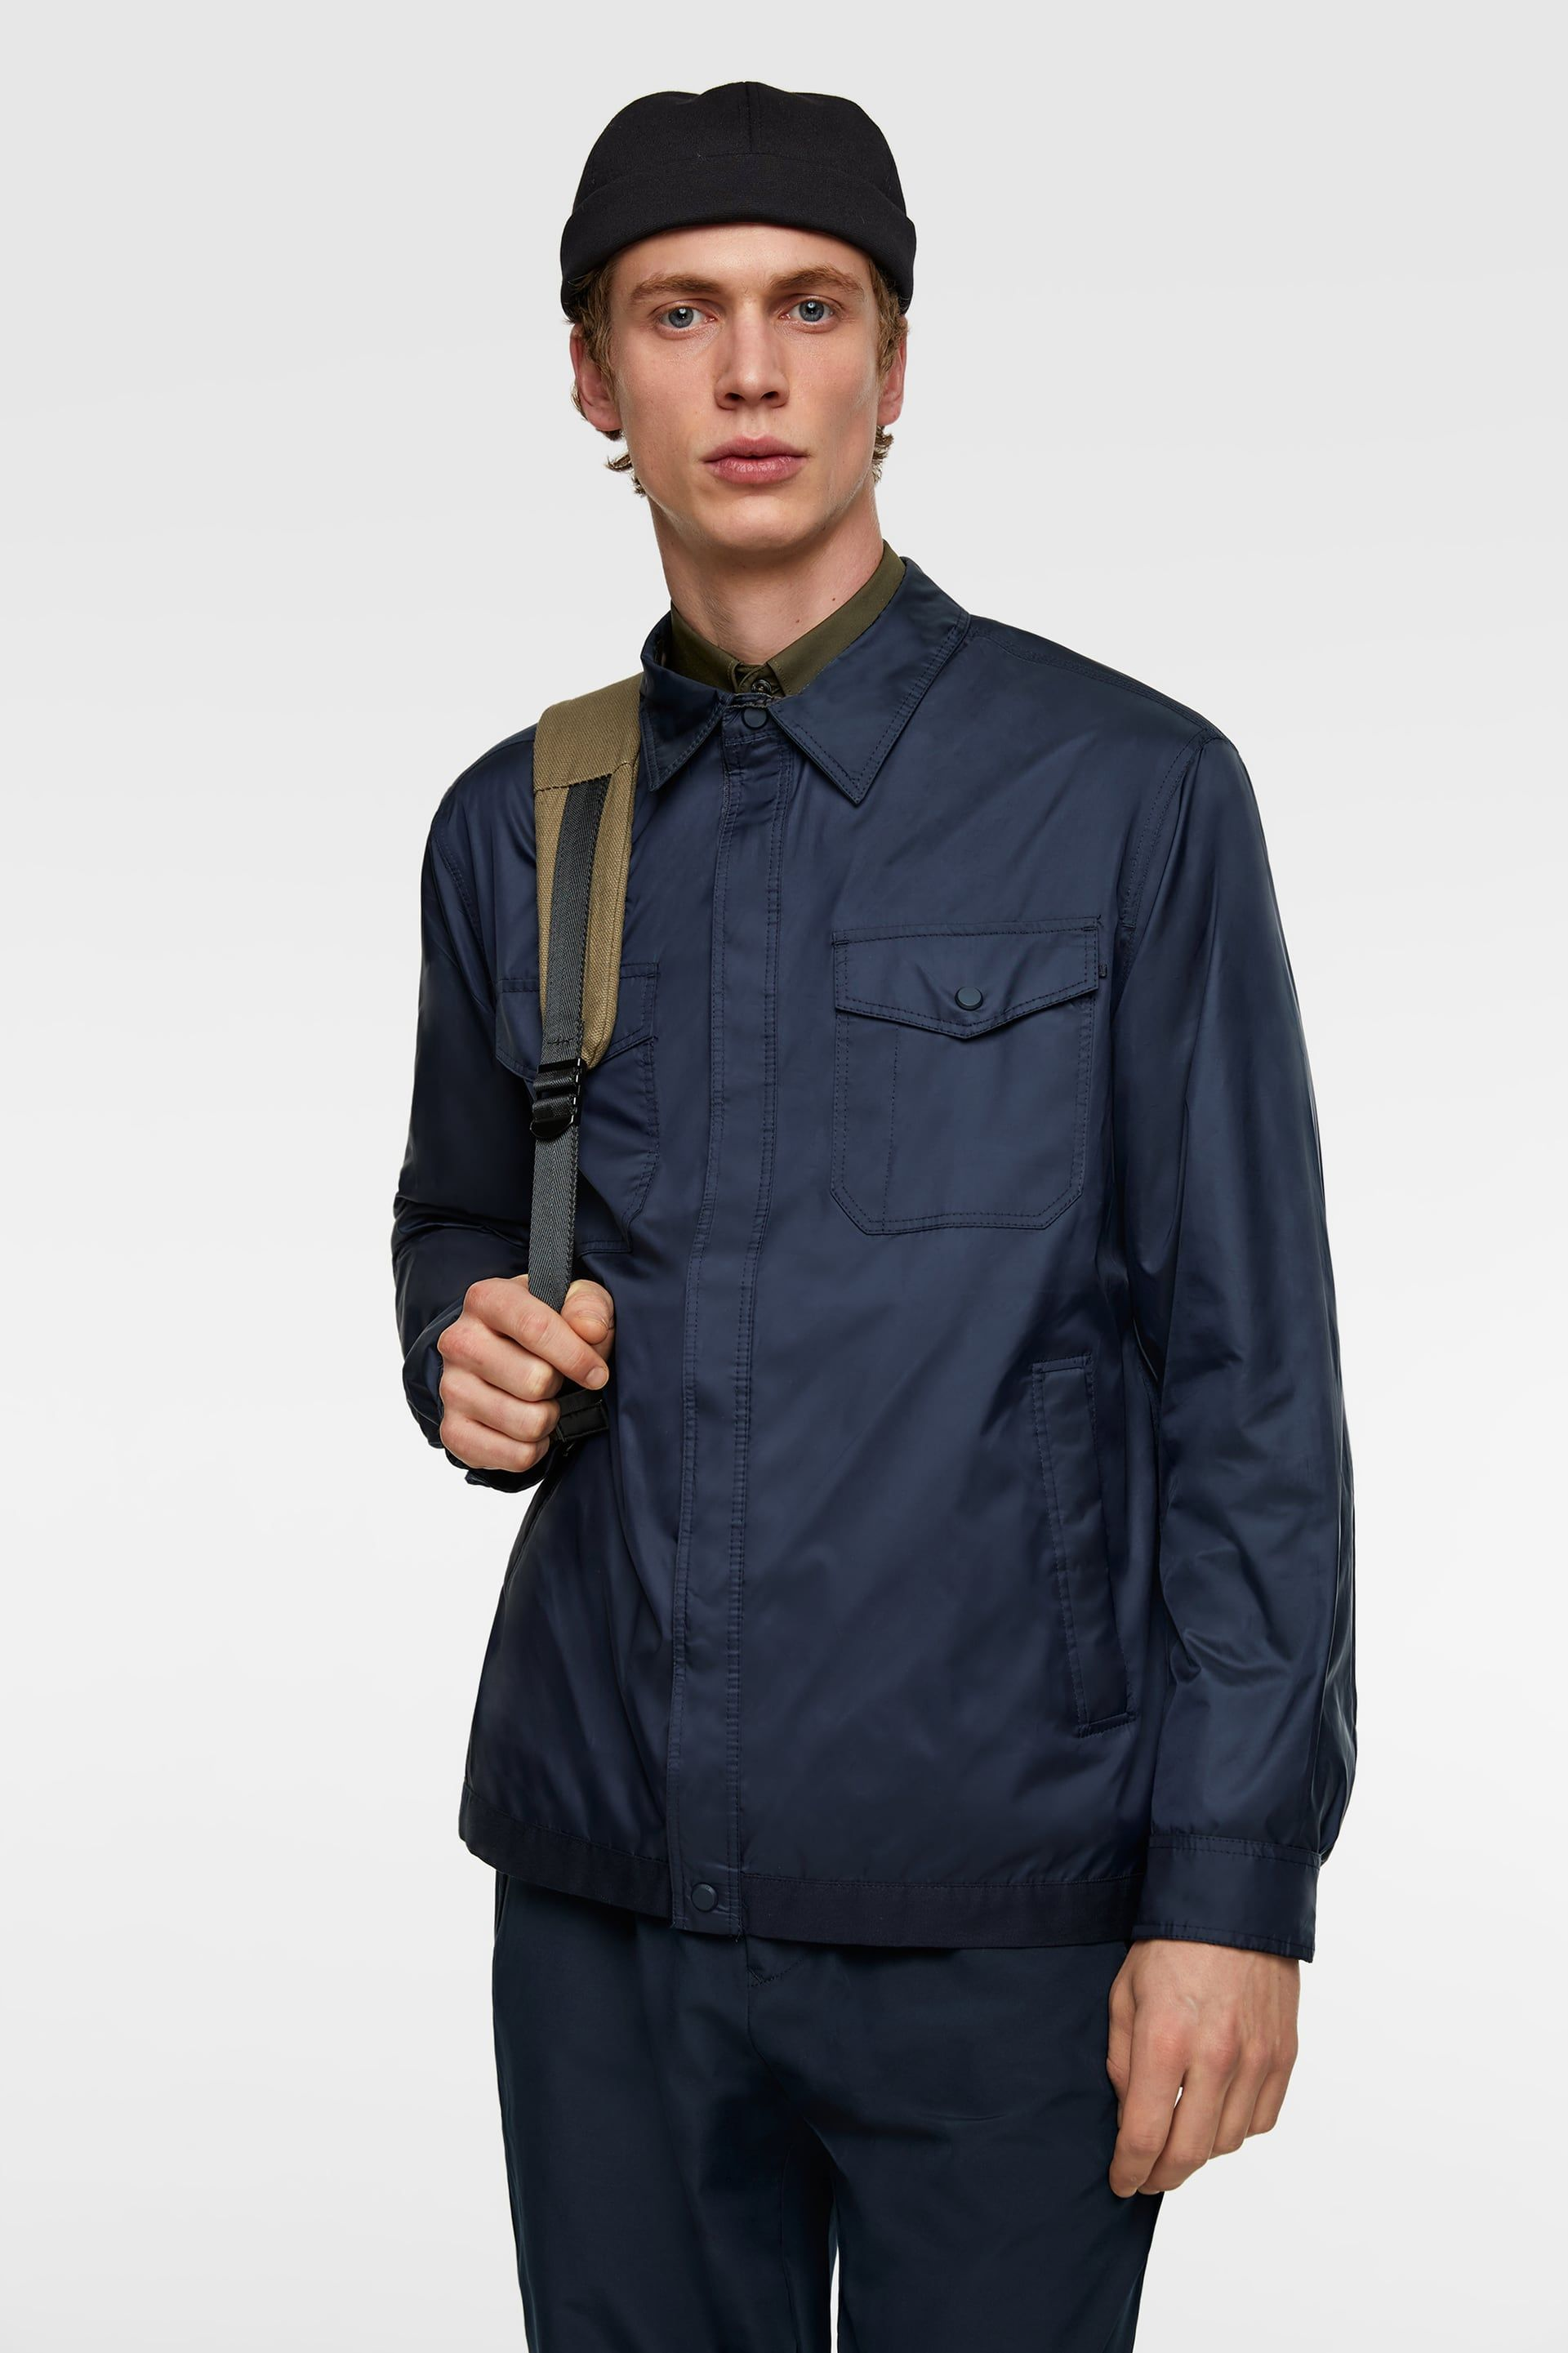 ac32267feb TECHNICAL OVERSHIRT WITH STRIPES from Zara | mens fashion in 2019 ...